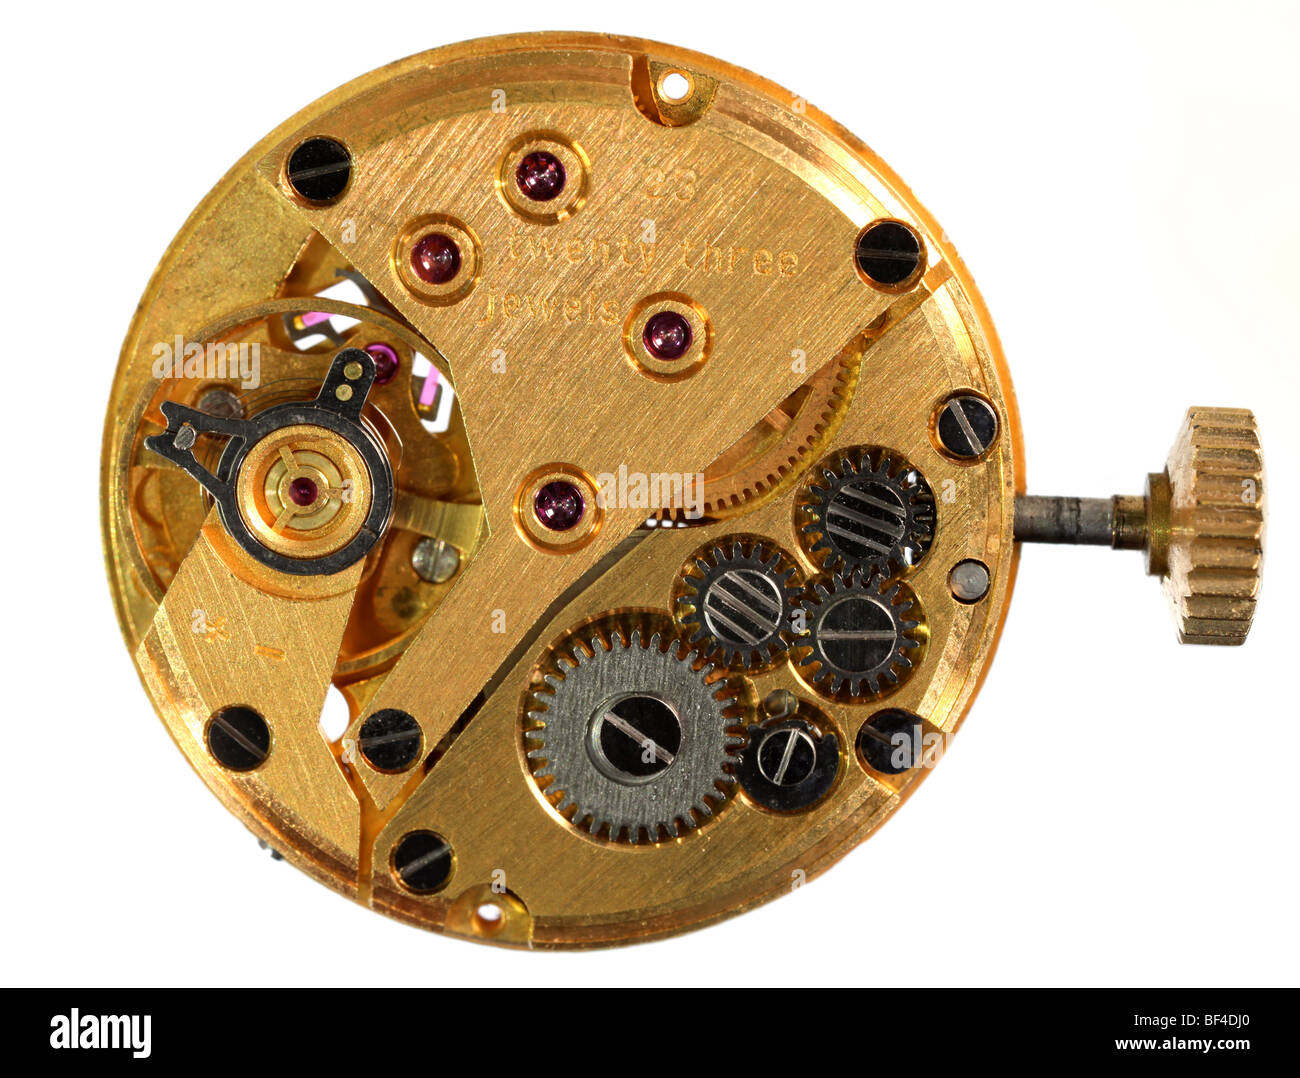 View of the back of the workings of a wristwatch - Stock Image